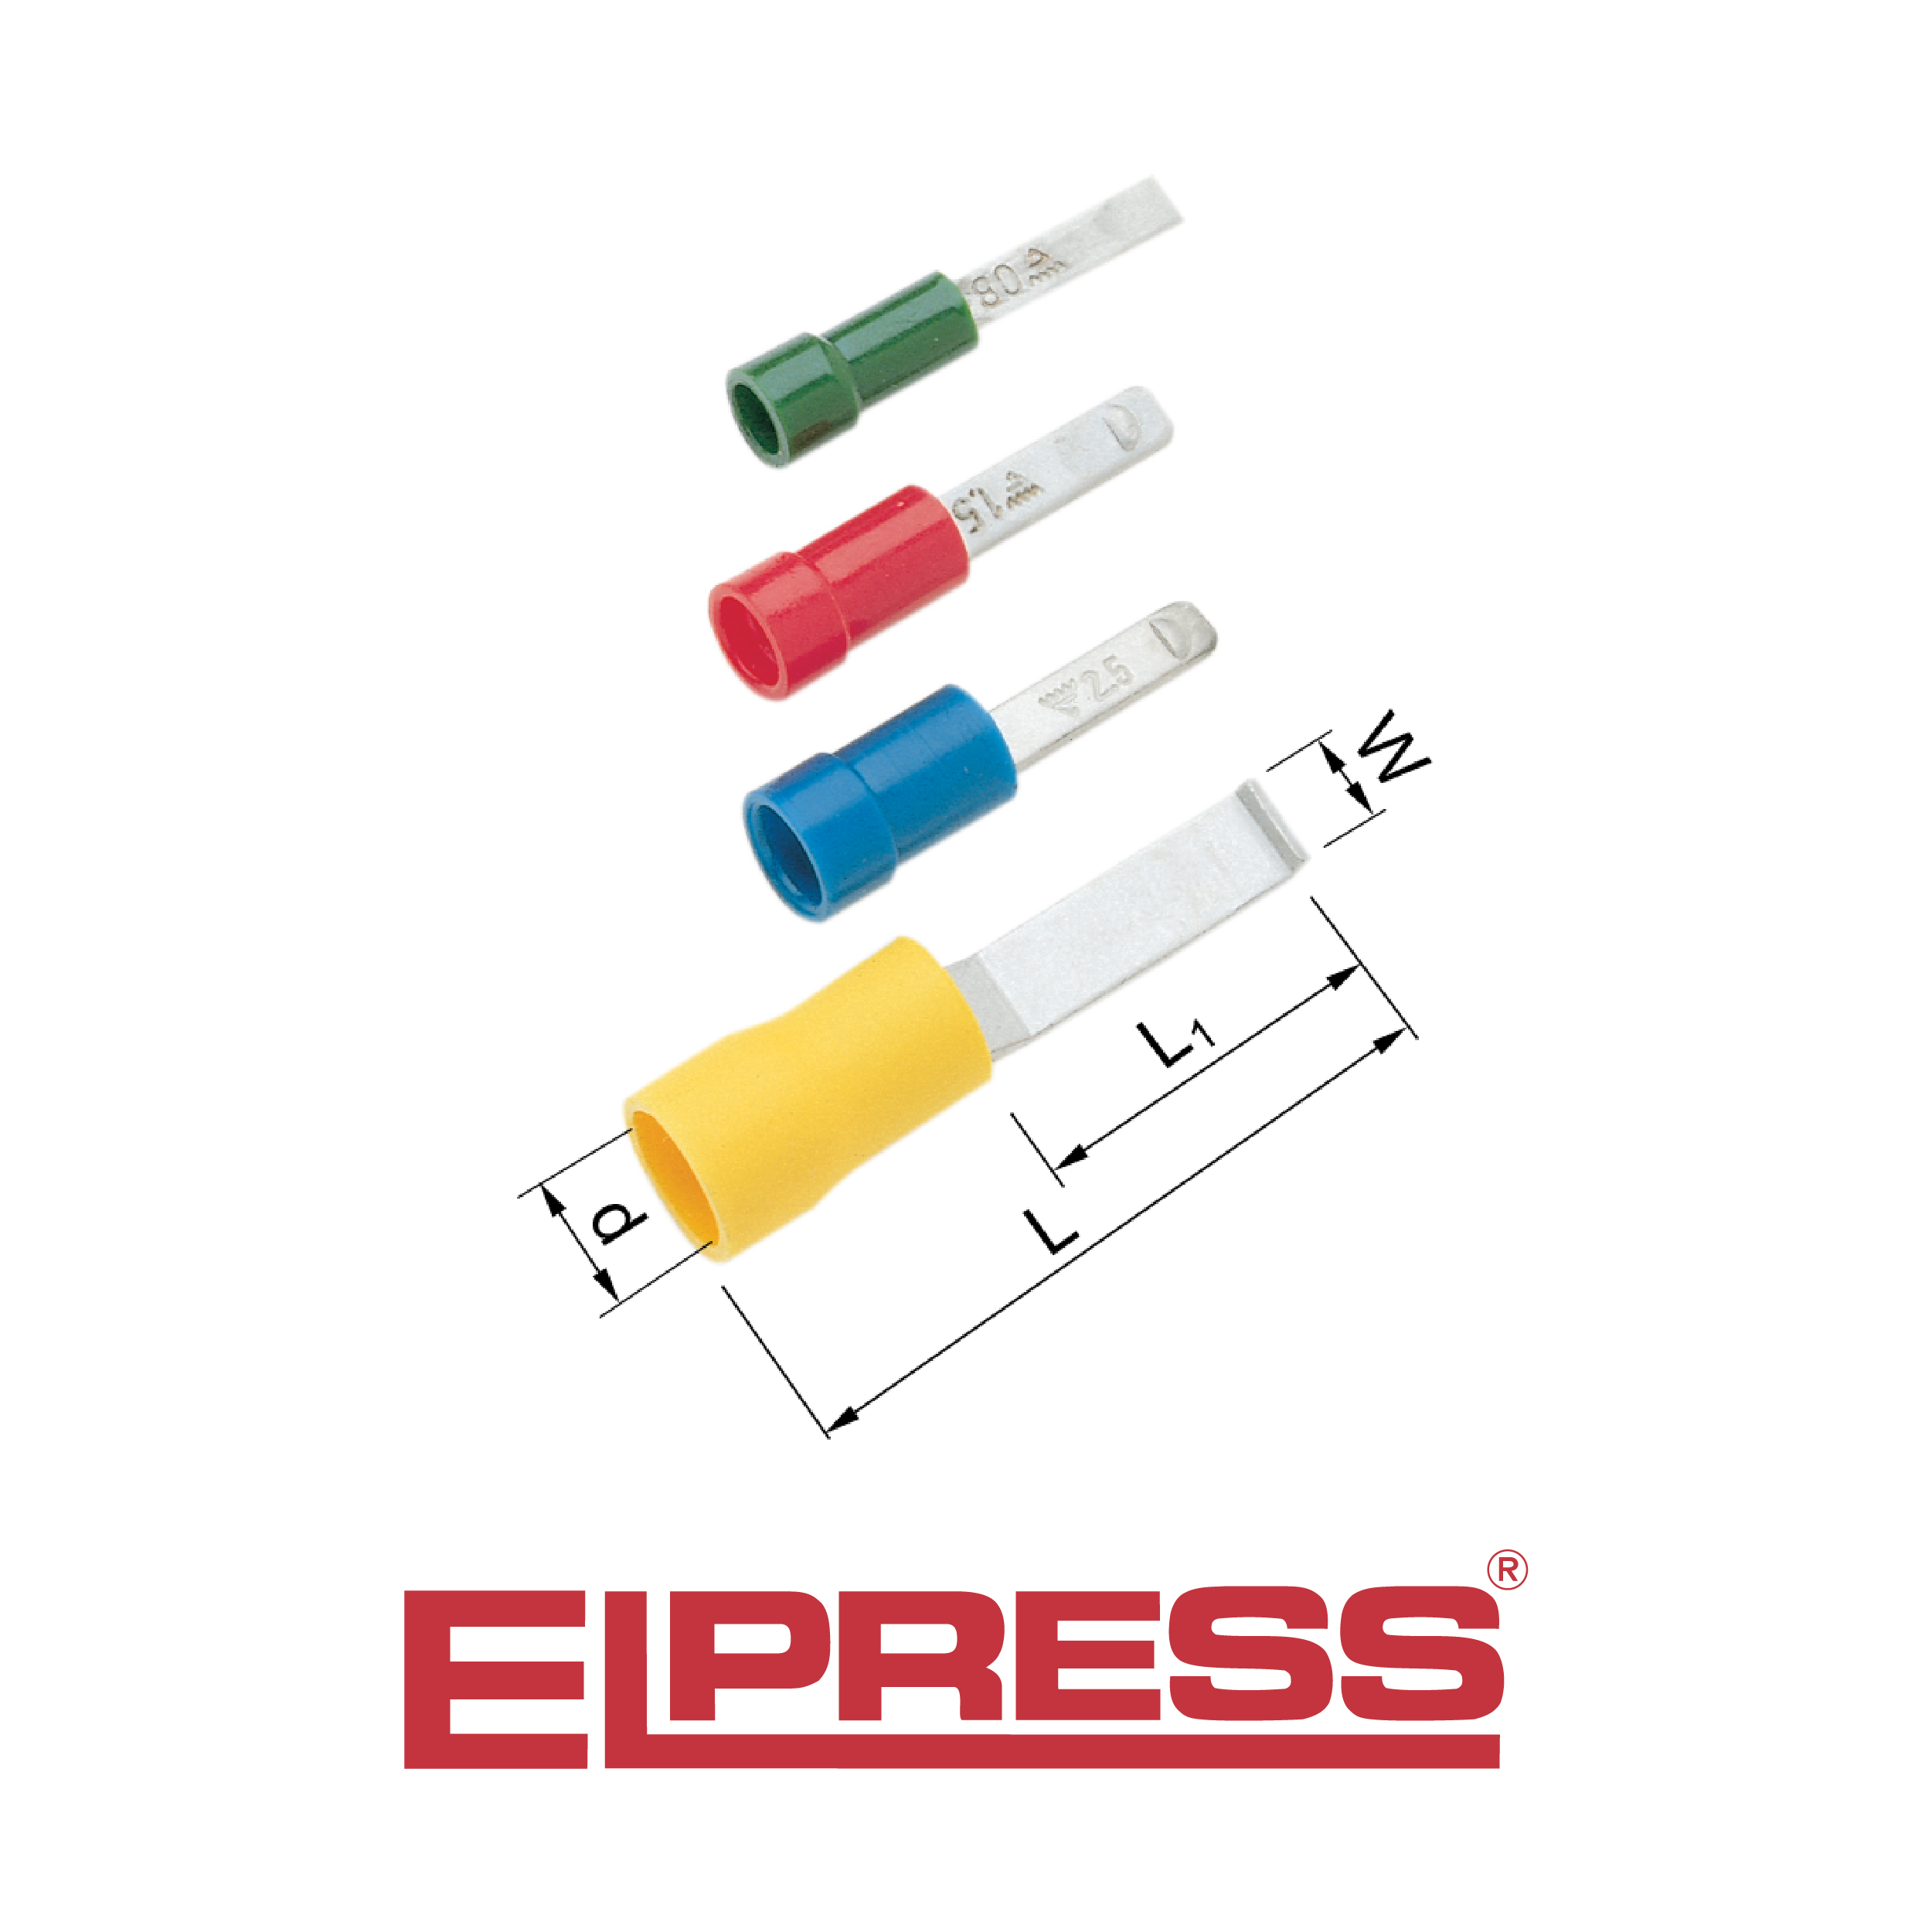 Elpress Pre Insulated Blade Terminals 0 25 6mm 178 Halogen